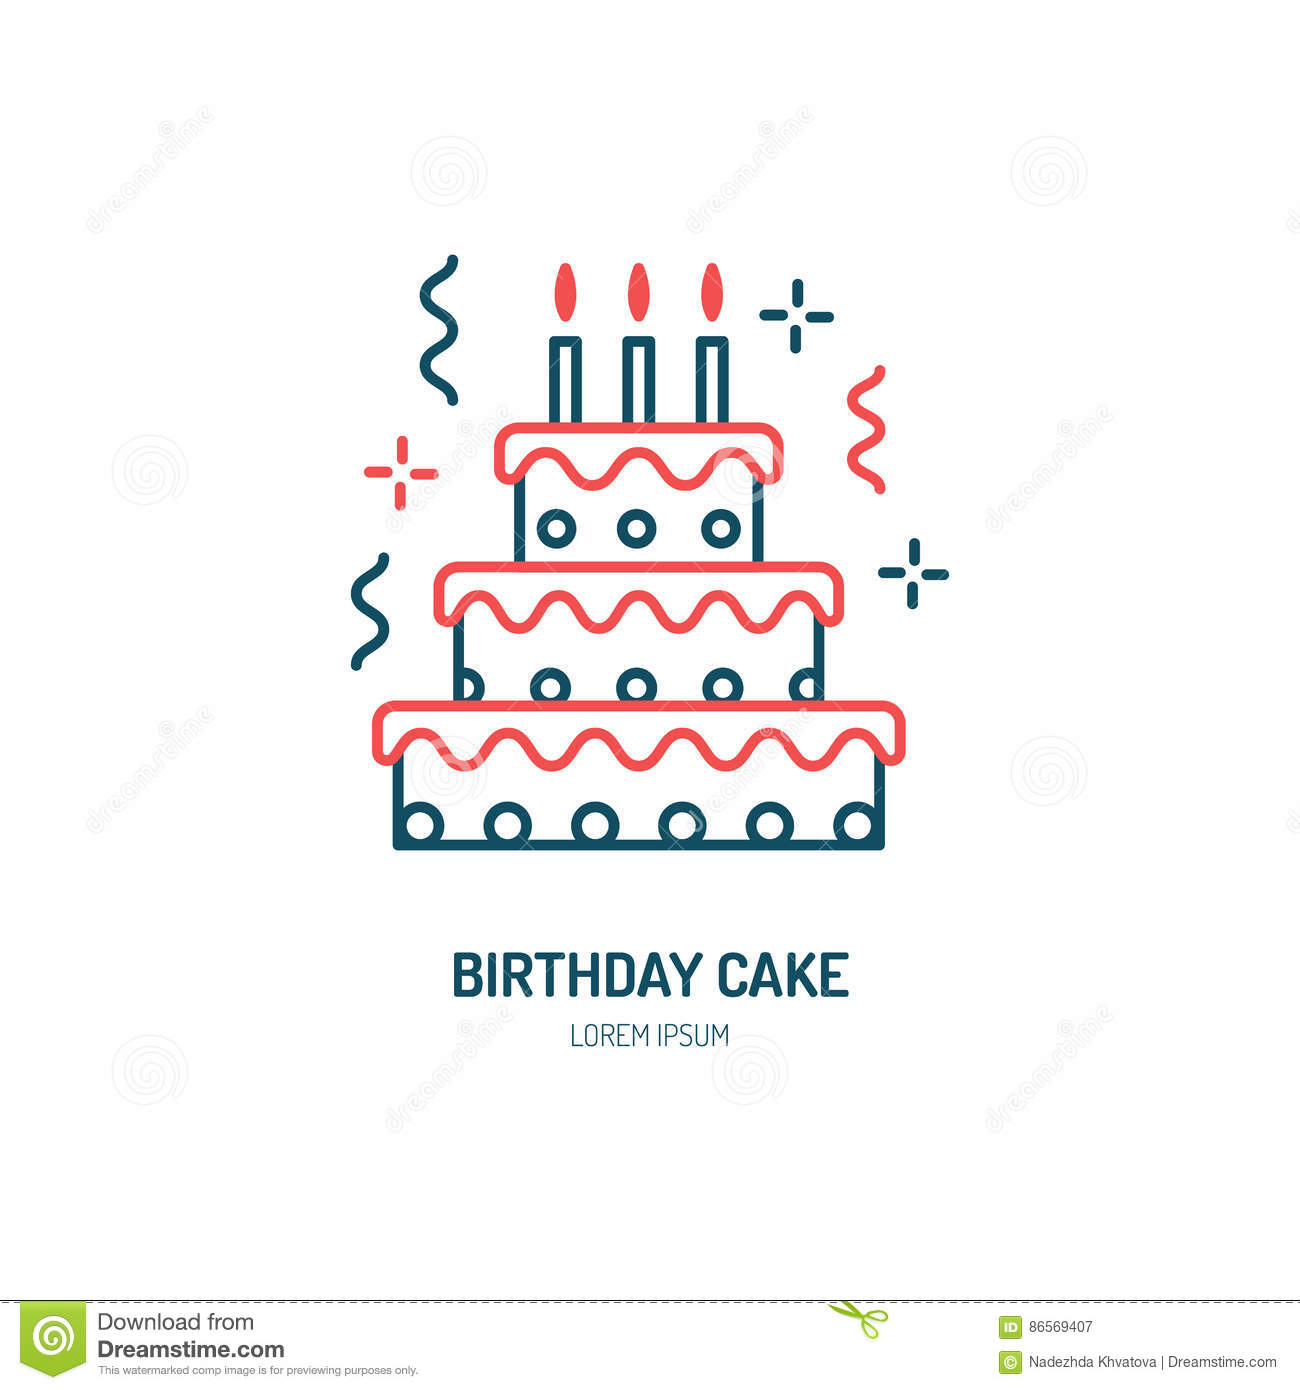 Birthday Cake Line Icon. Vector Logo For Bakery, Party